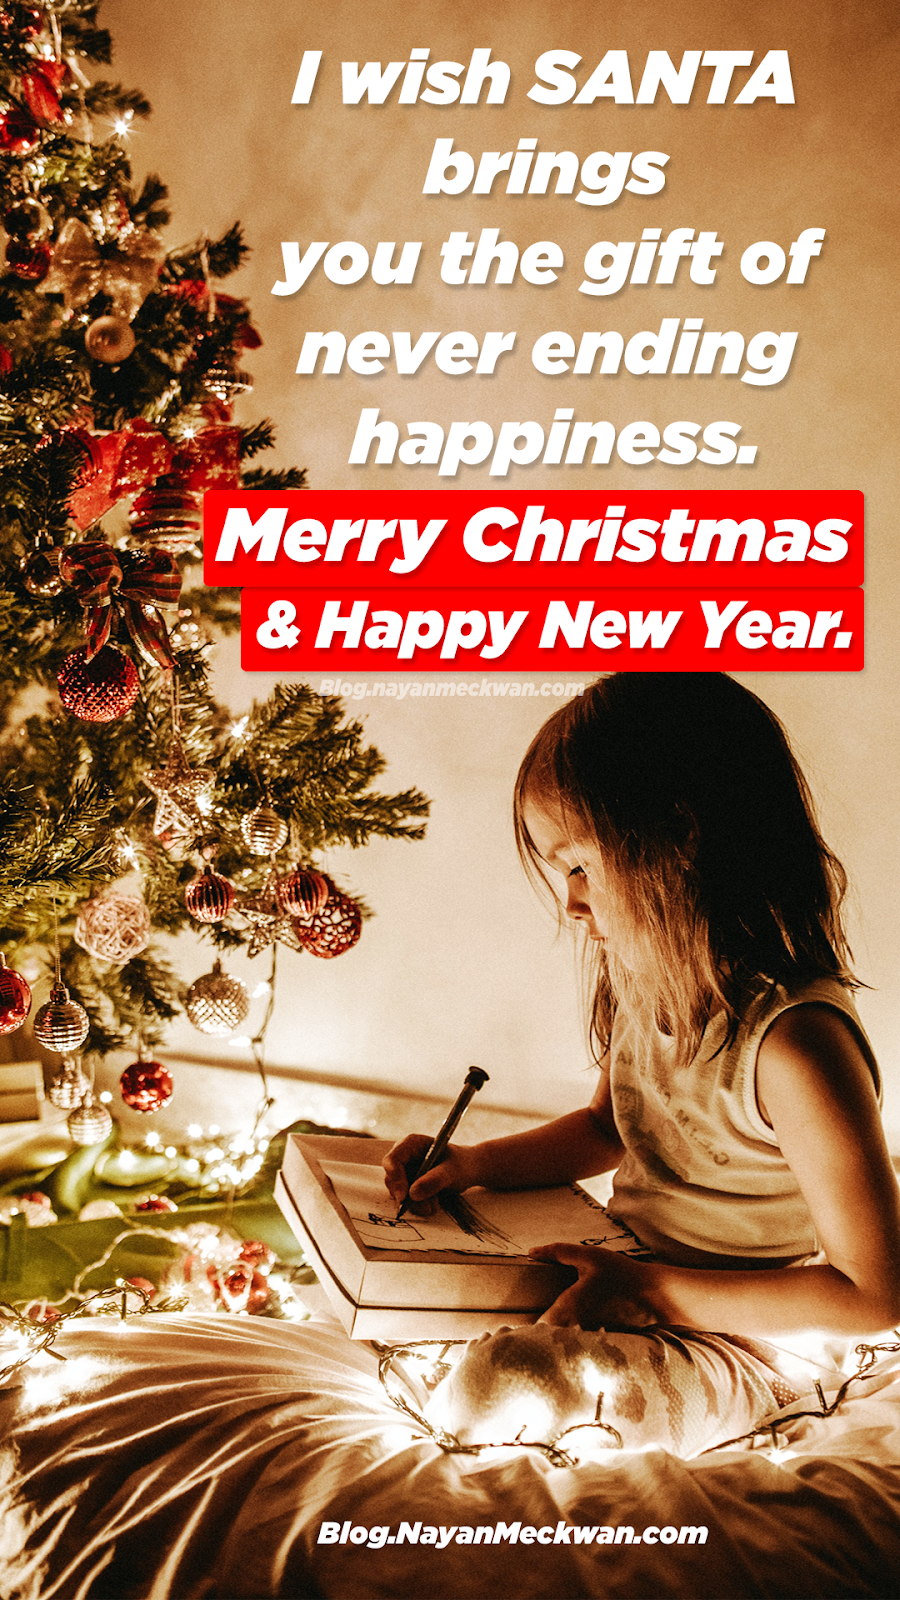 Merry Christmas & Happy New year 2020 Merry Christmas & Happy New year 2020.